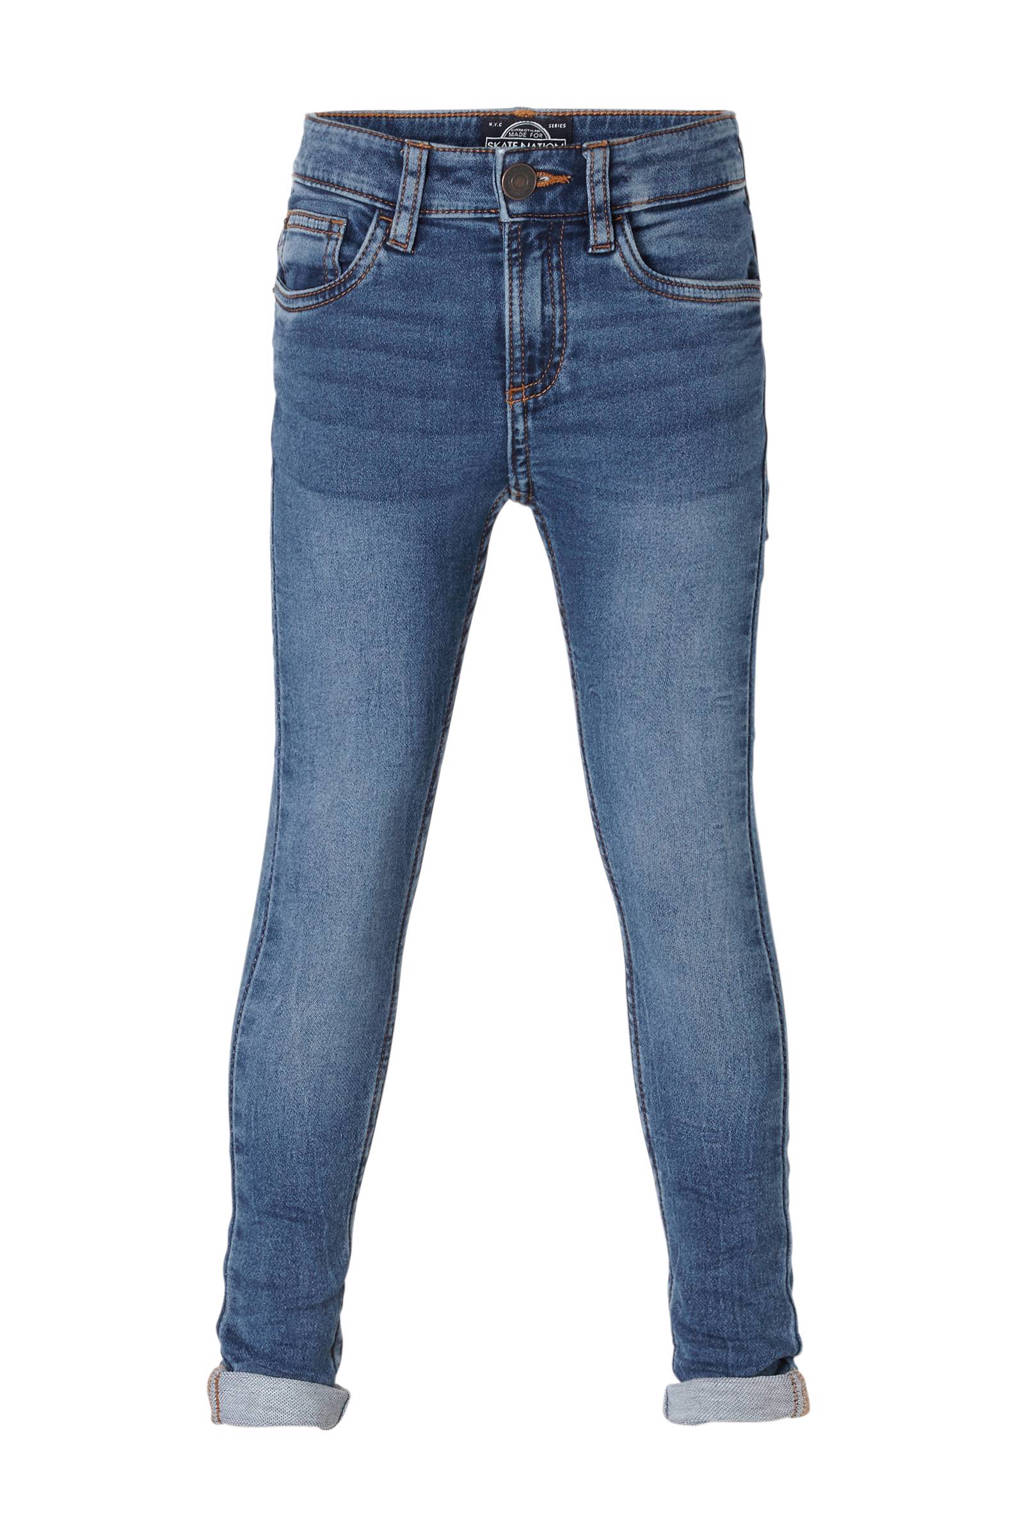 C&A The Denim super skinny jeans, Light denim